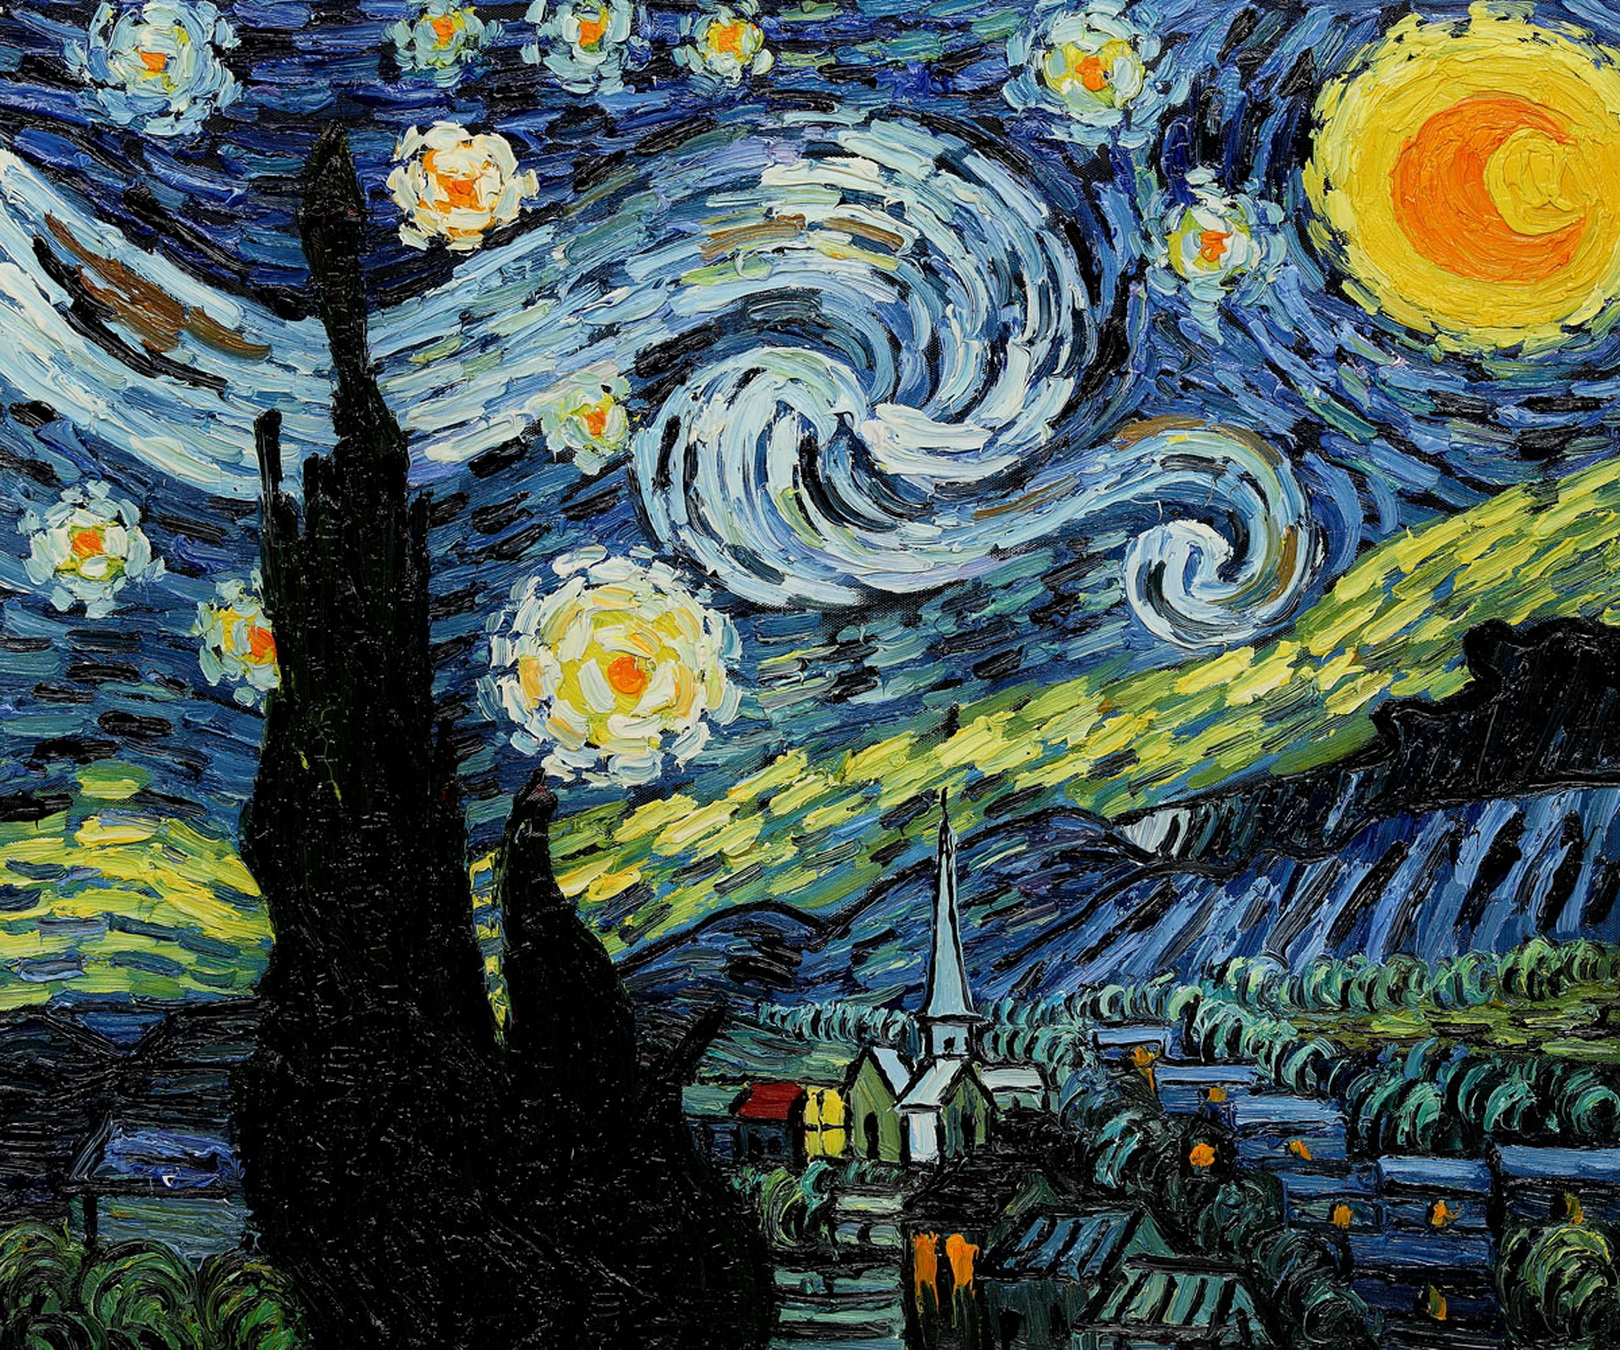 starry night van gogh Artwork details starry night (1889) is perhaps the most famous of vincent van gogh's paintings painted after the 1888 breakdown that resulted in his hospitalization in the asylum at arles.